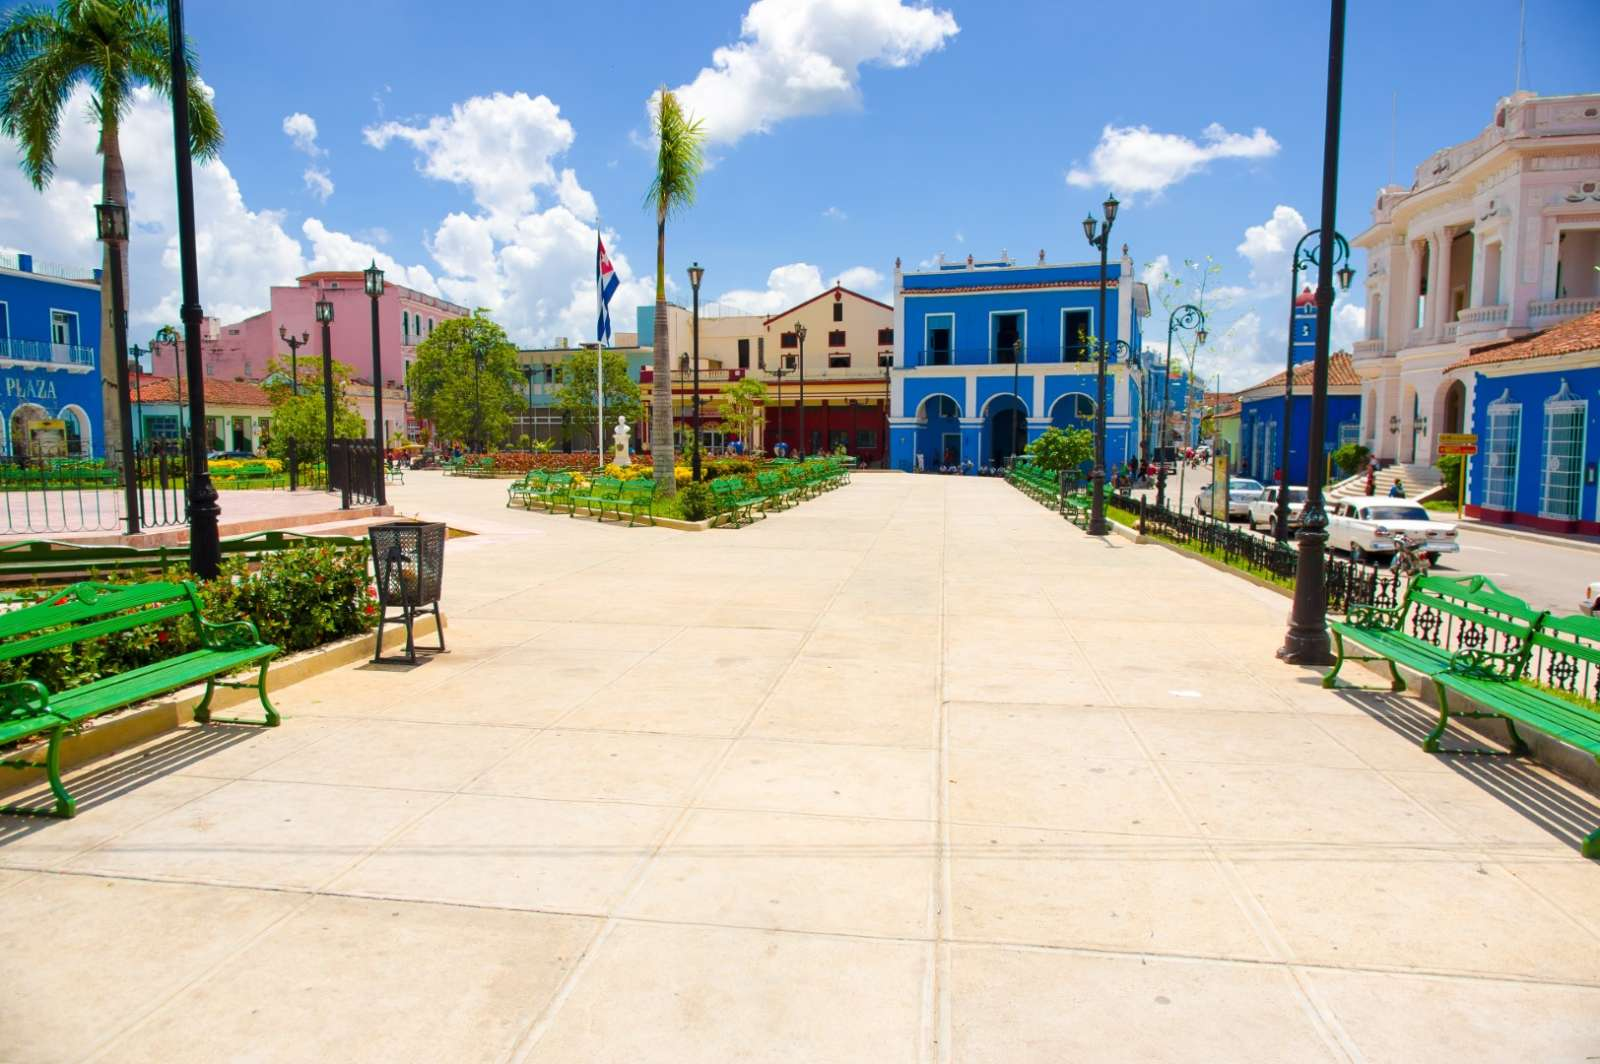 The main square in Sancti Spiritus, Cuba